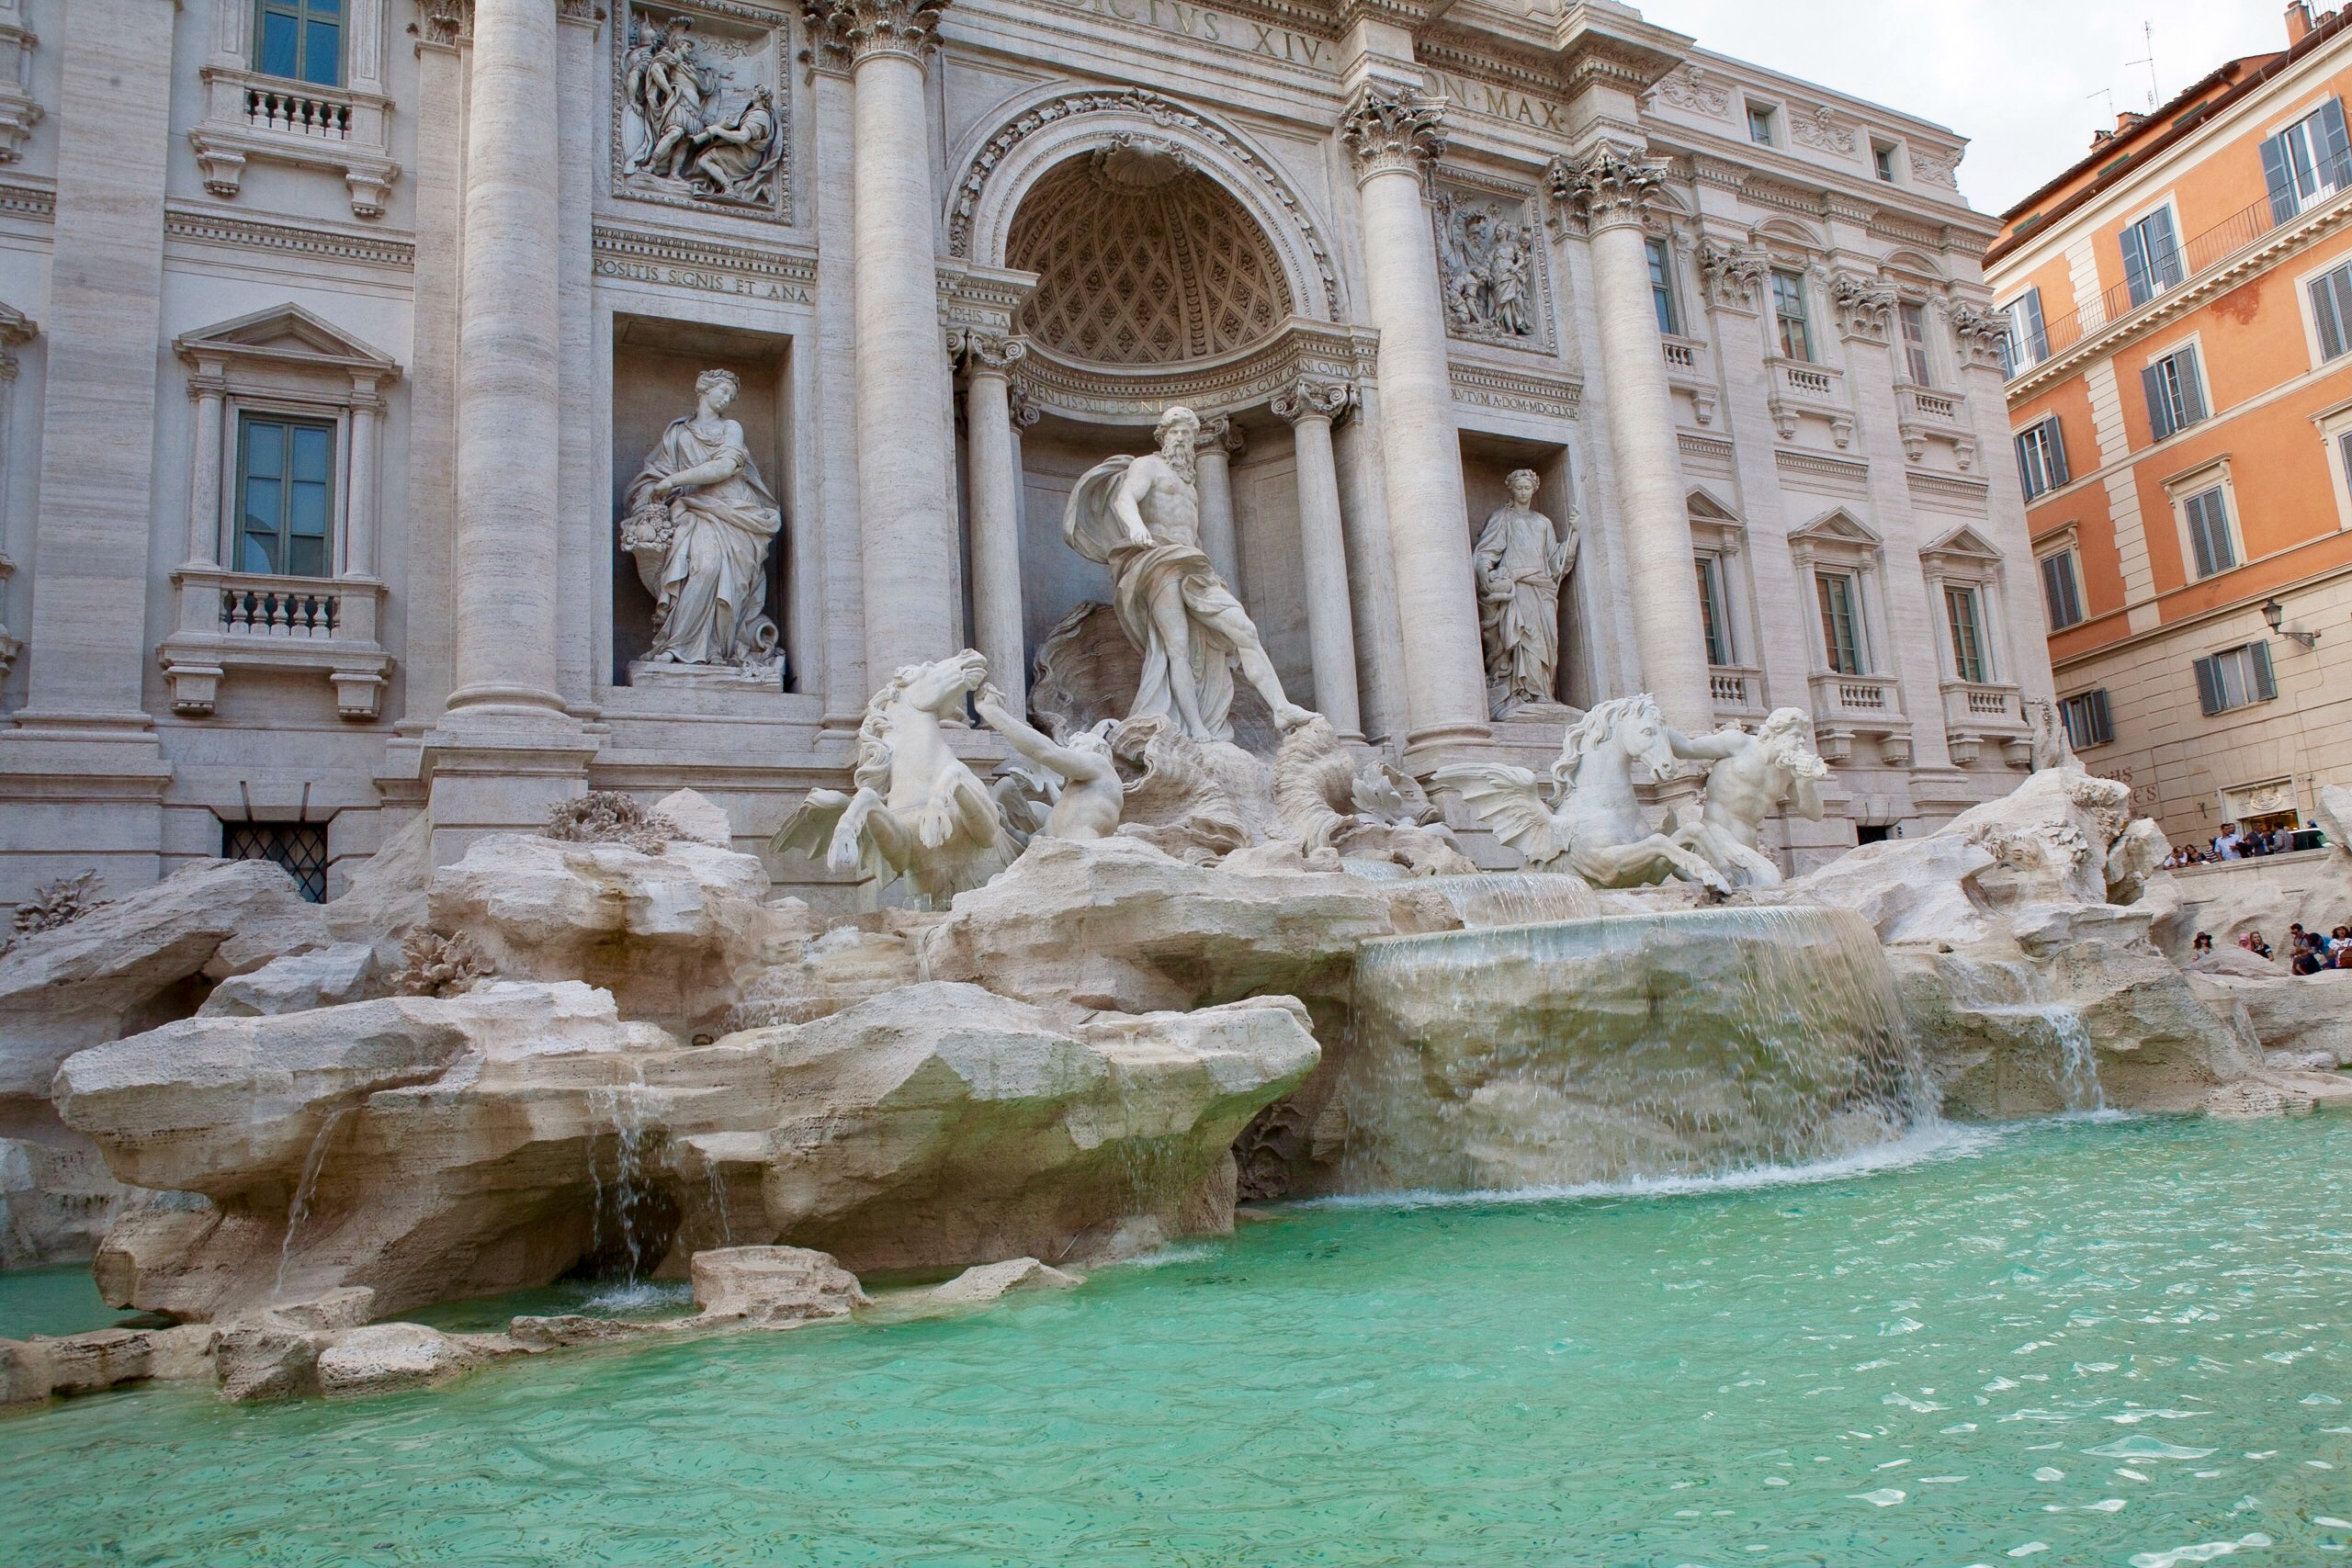 The beautiful Trevi Fountain